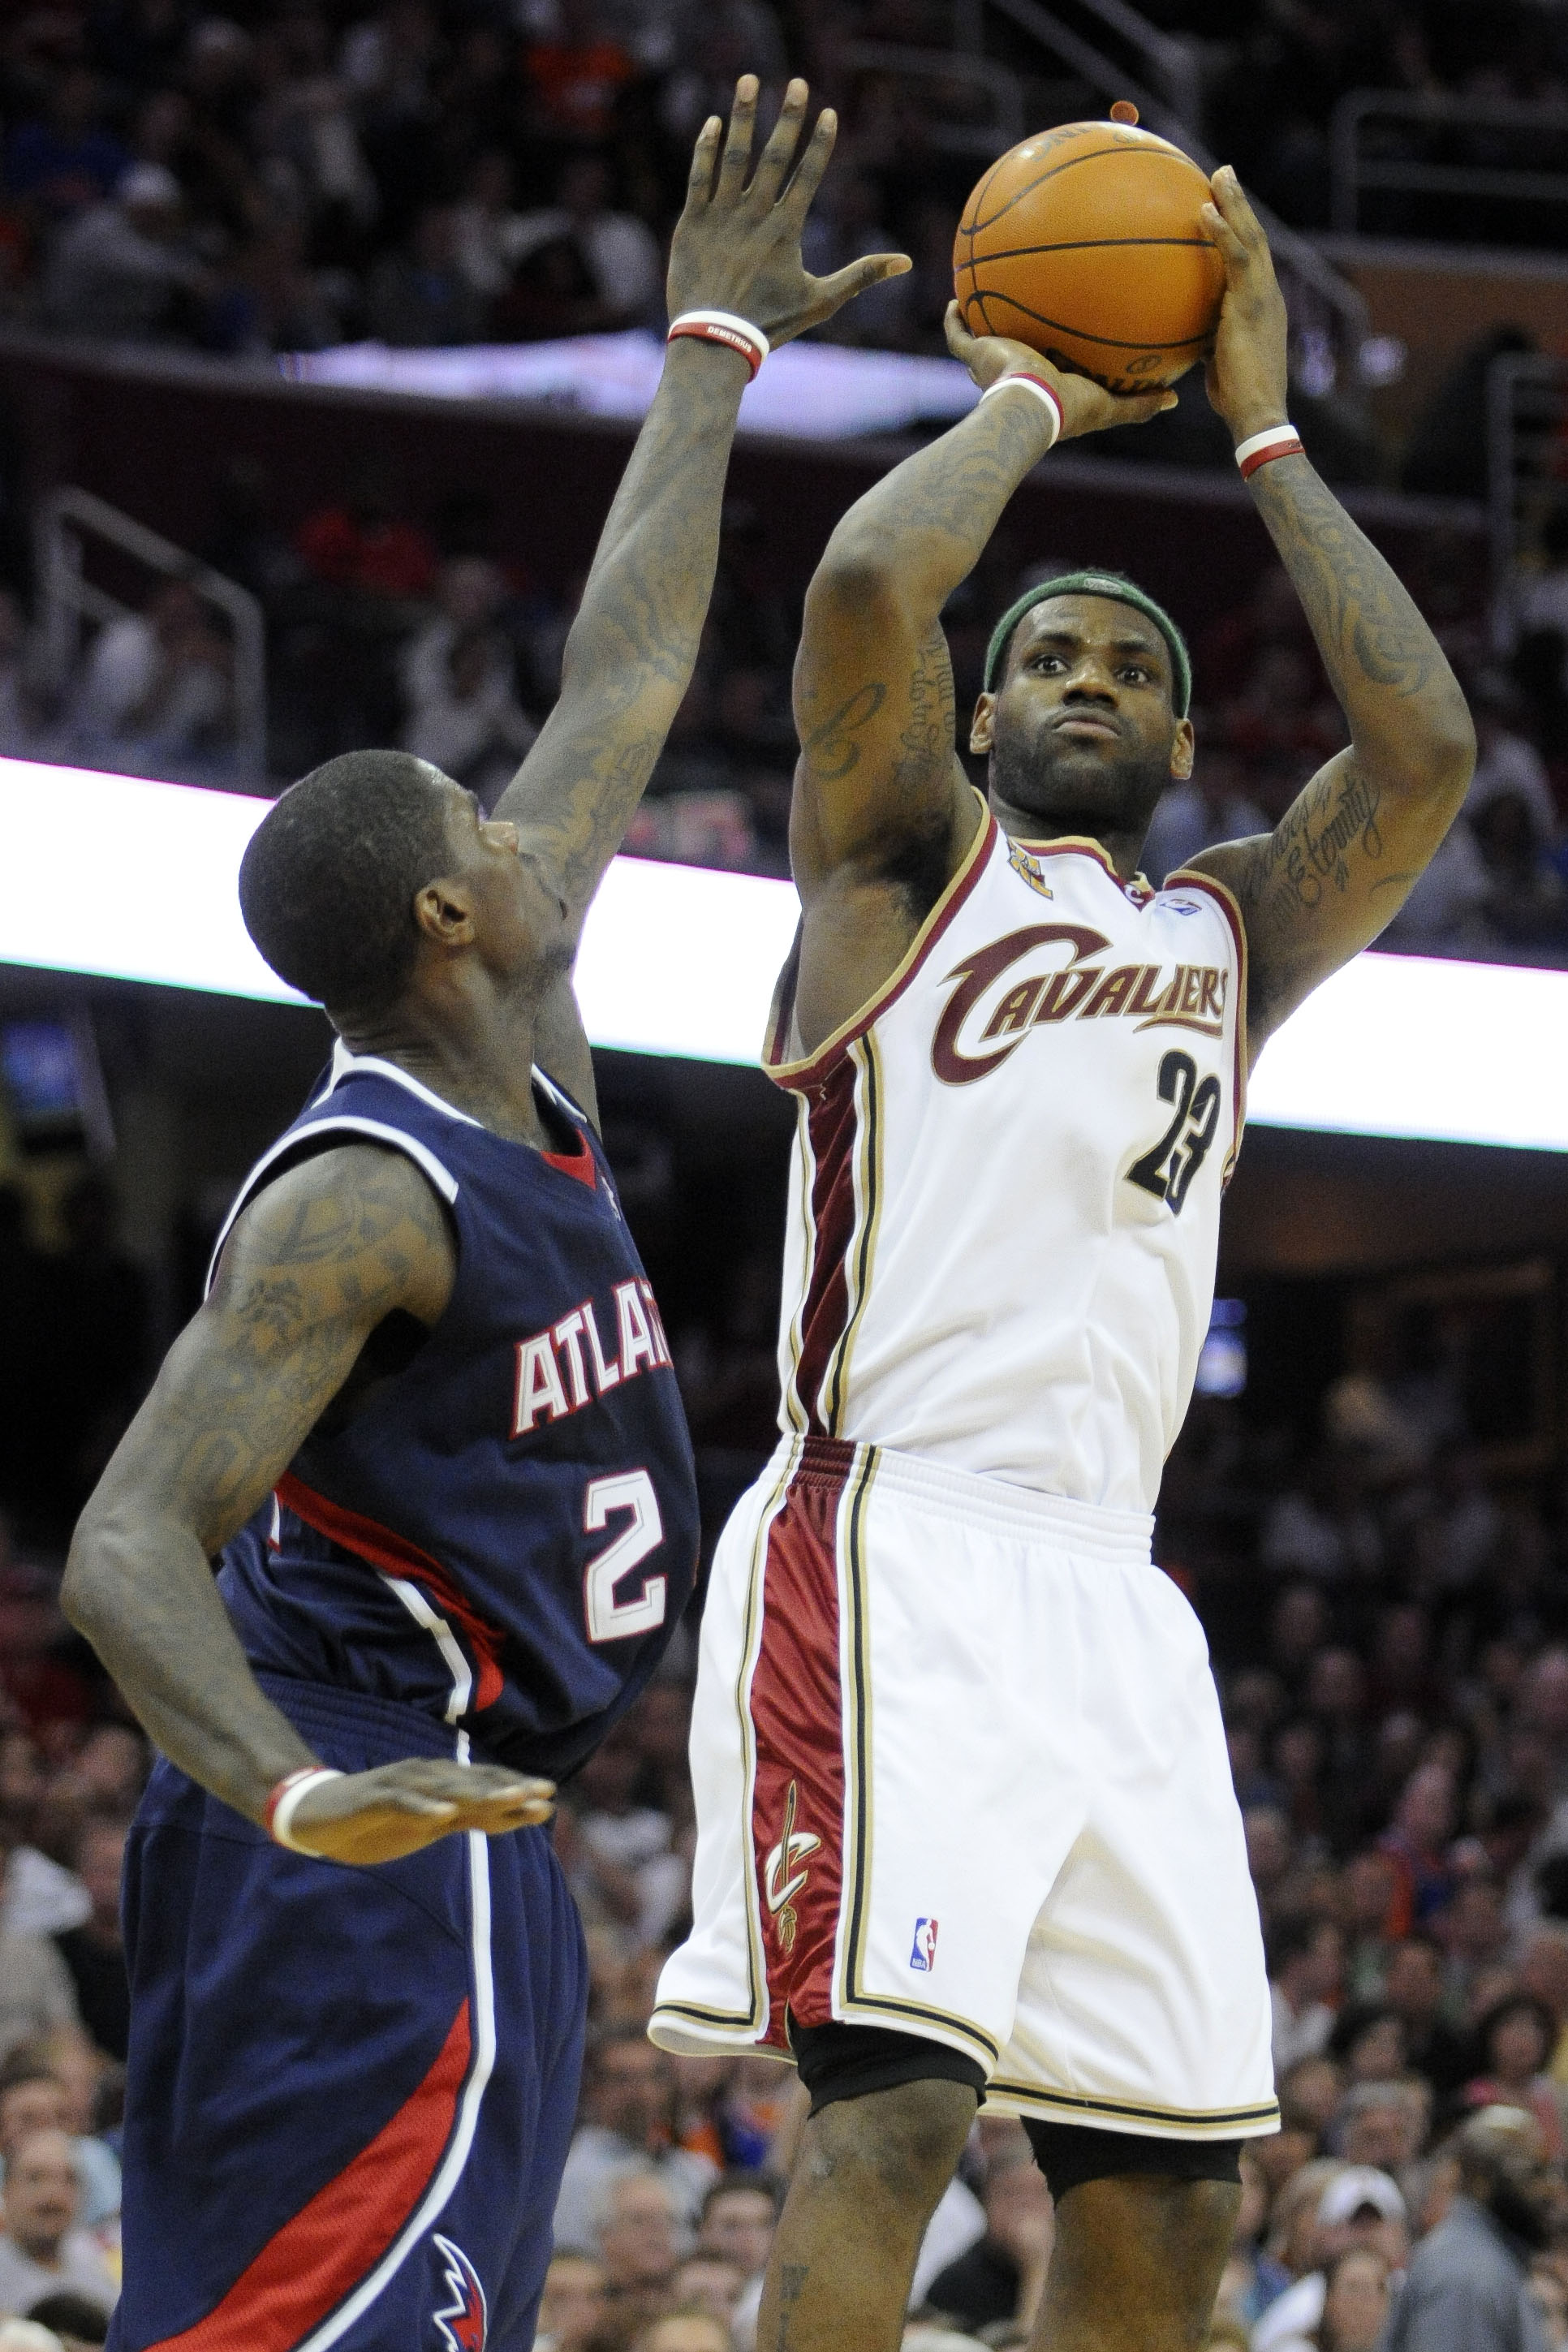 Cleveland Cavaliers forward LeBron James, right, shoots over Atlanta Hawks guard Joe Johnson during the fourth quarter of an NBA basketball game on Fr...